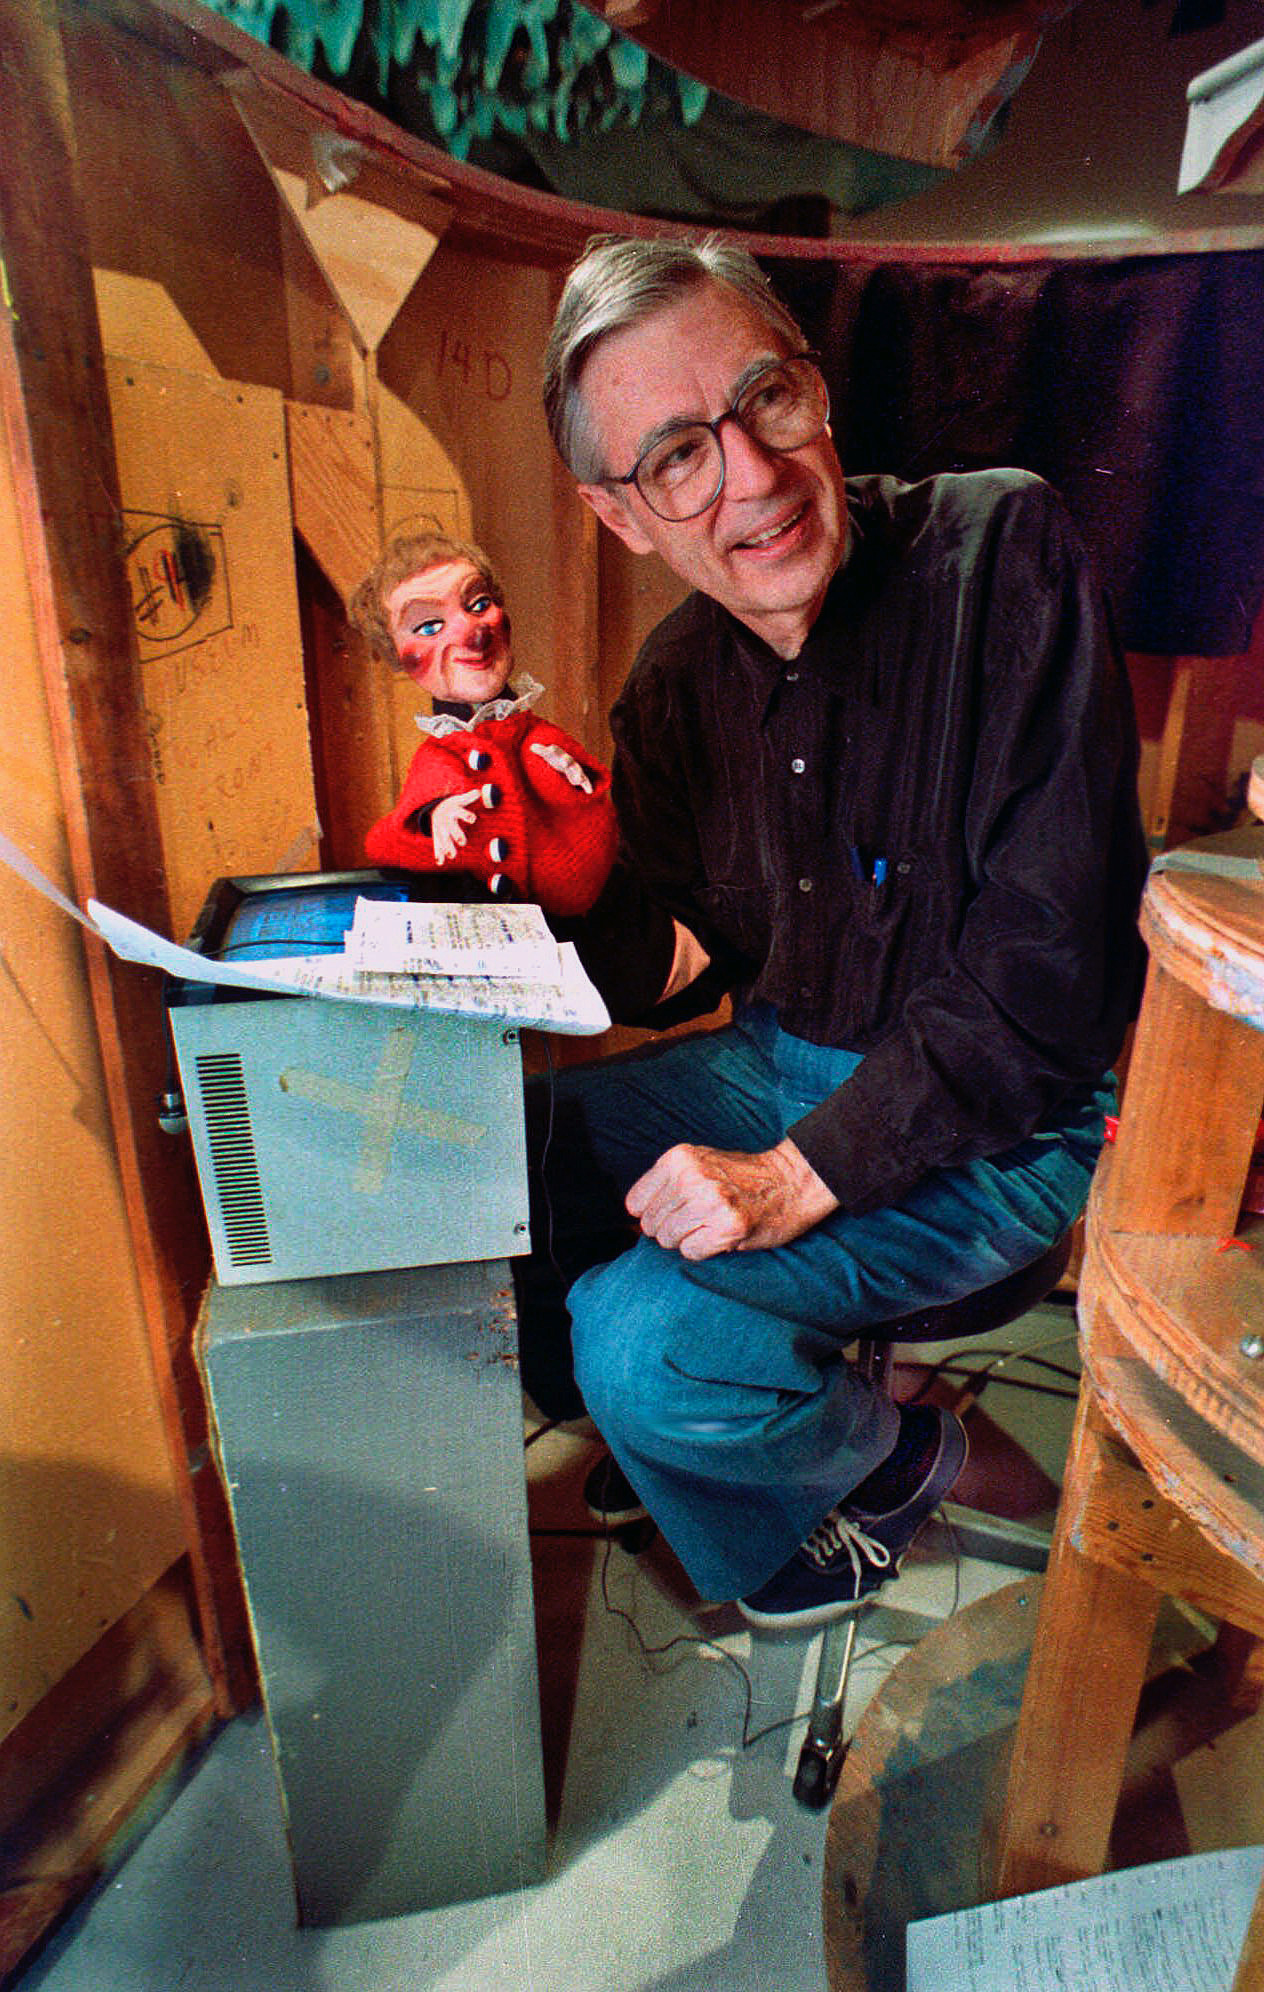 Mister Rogers First Asked Won T You Be My Neighbor On Feb 19 1968 Pennlive Com